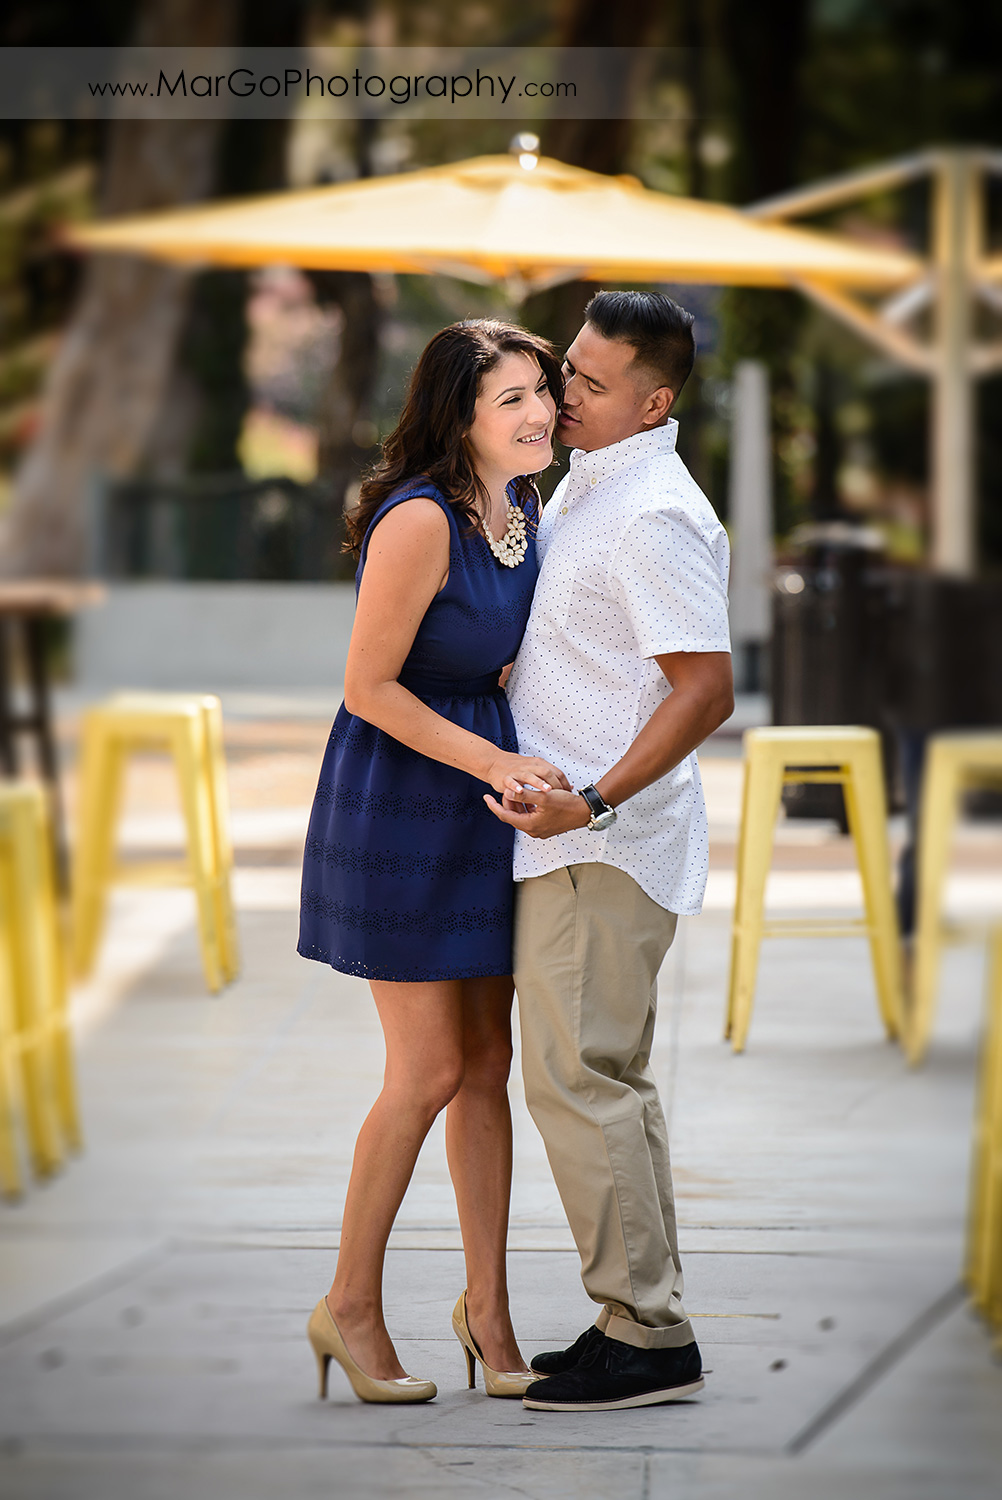 woman in blue dress and man in white shirt dancing during engagement session at San Pedro Square Market in San Jose